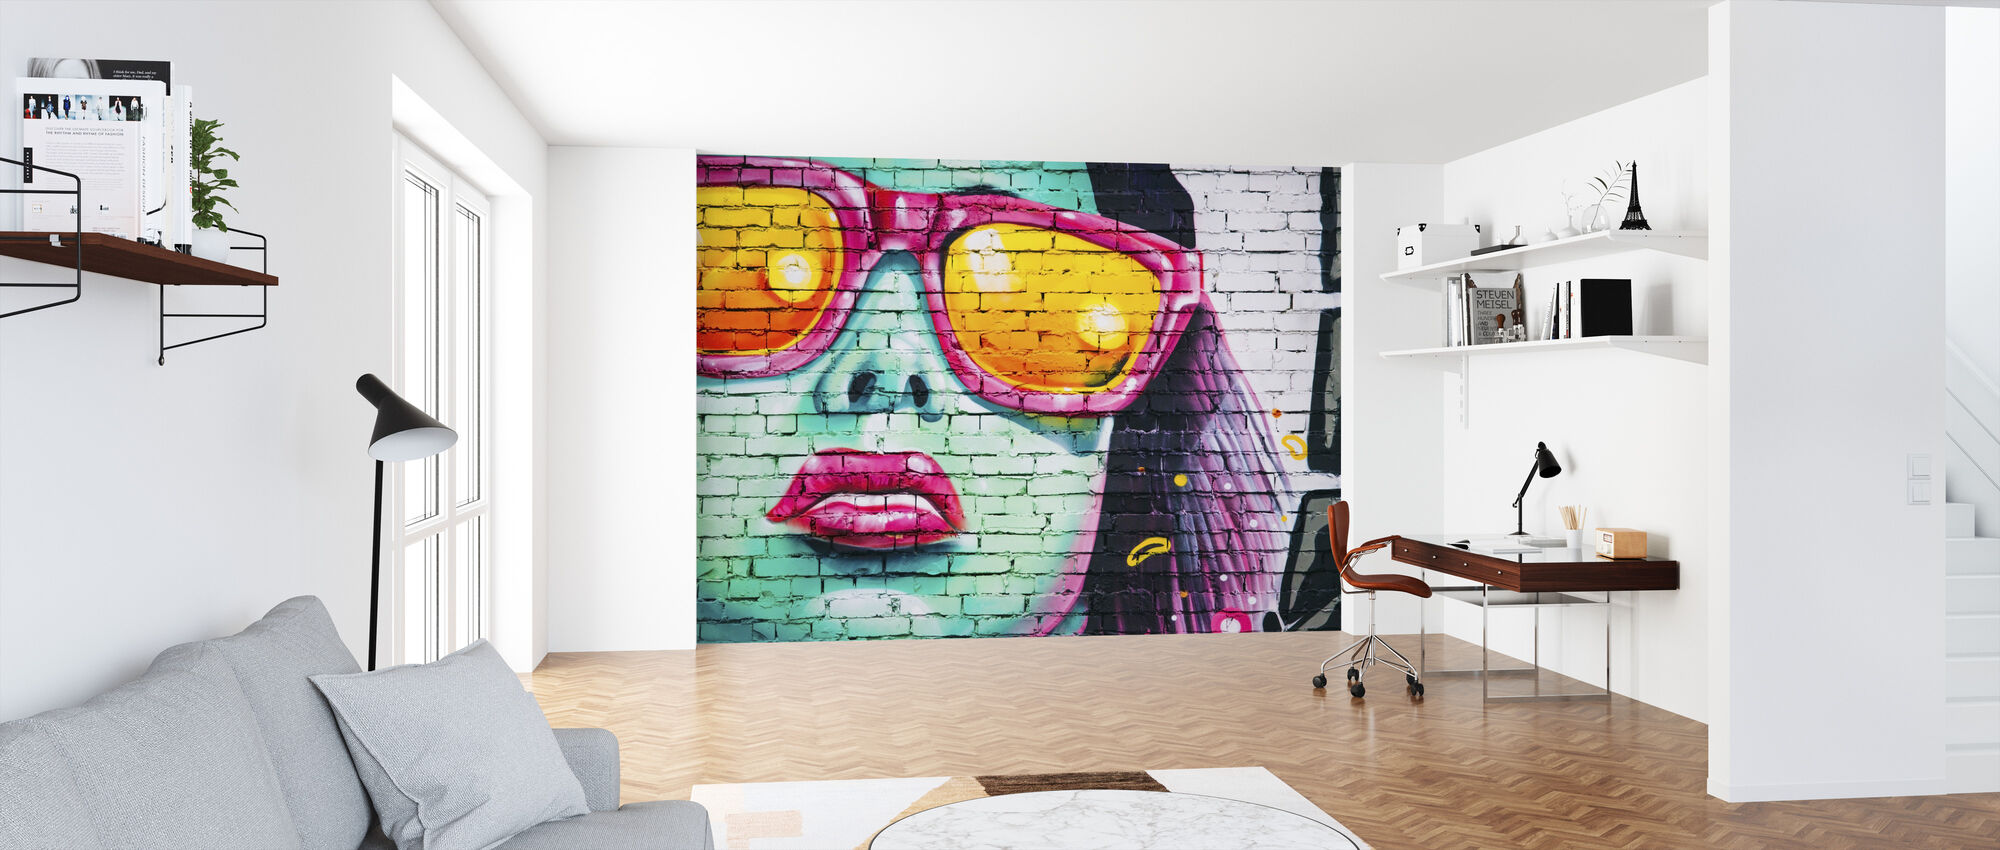 Colorful Wall Painting - Wallpaper - Office